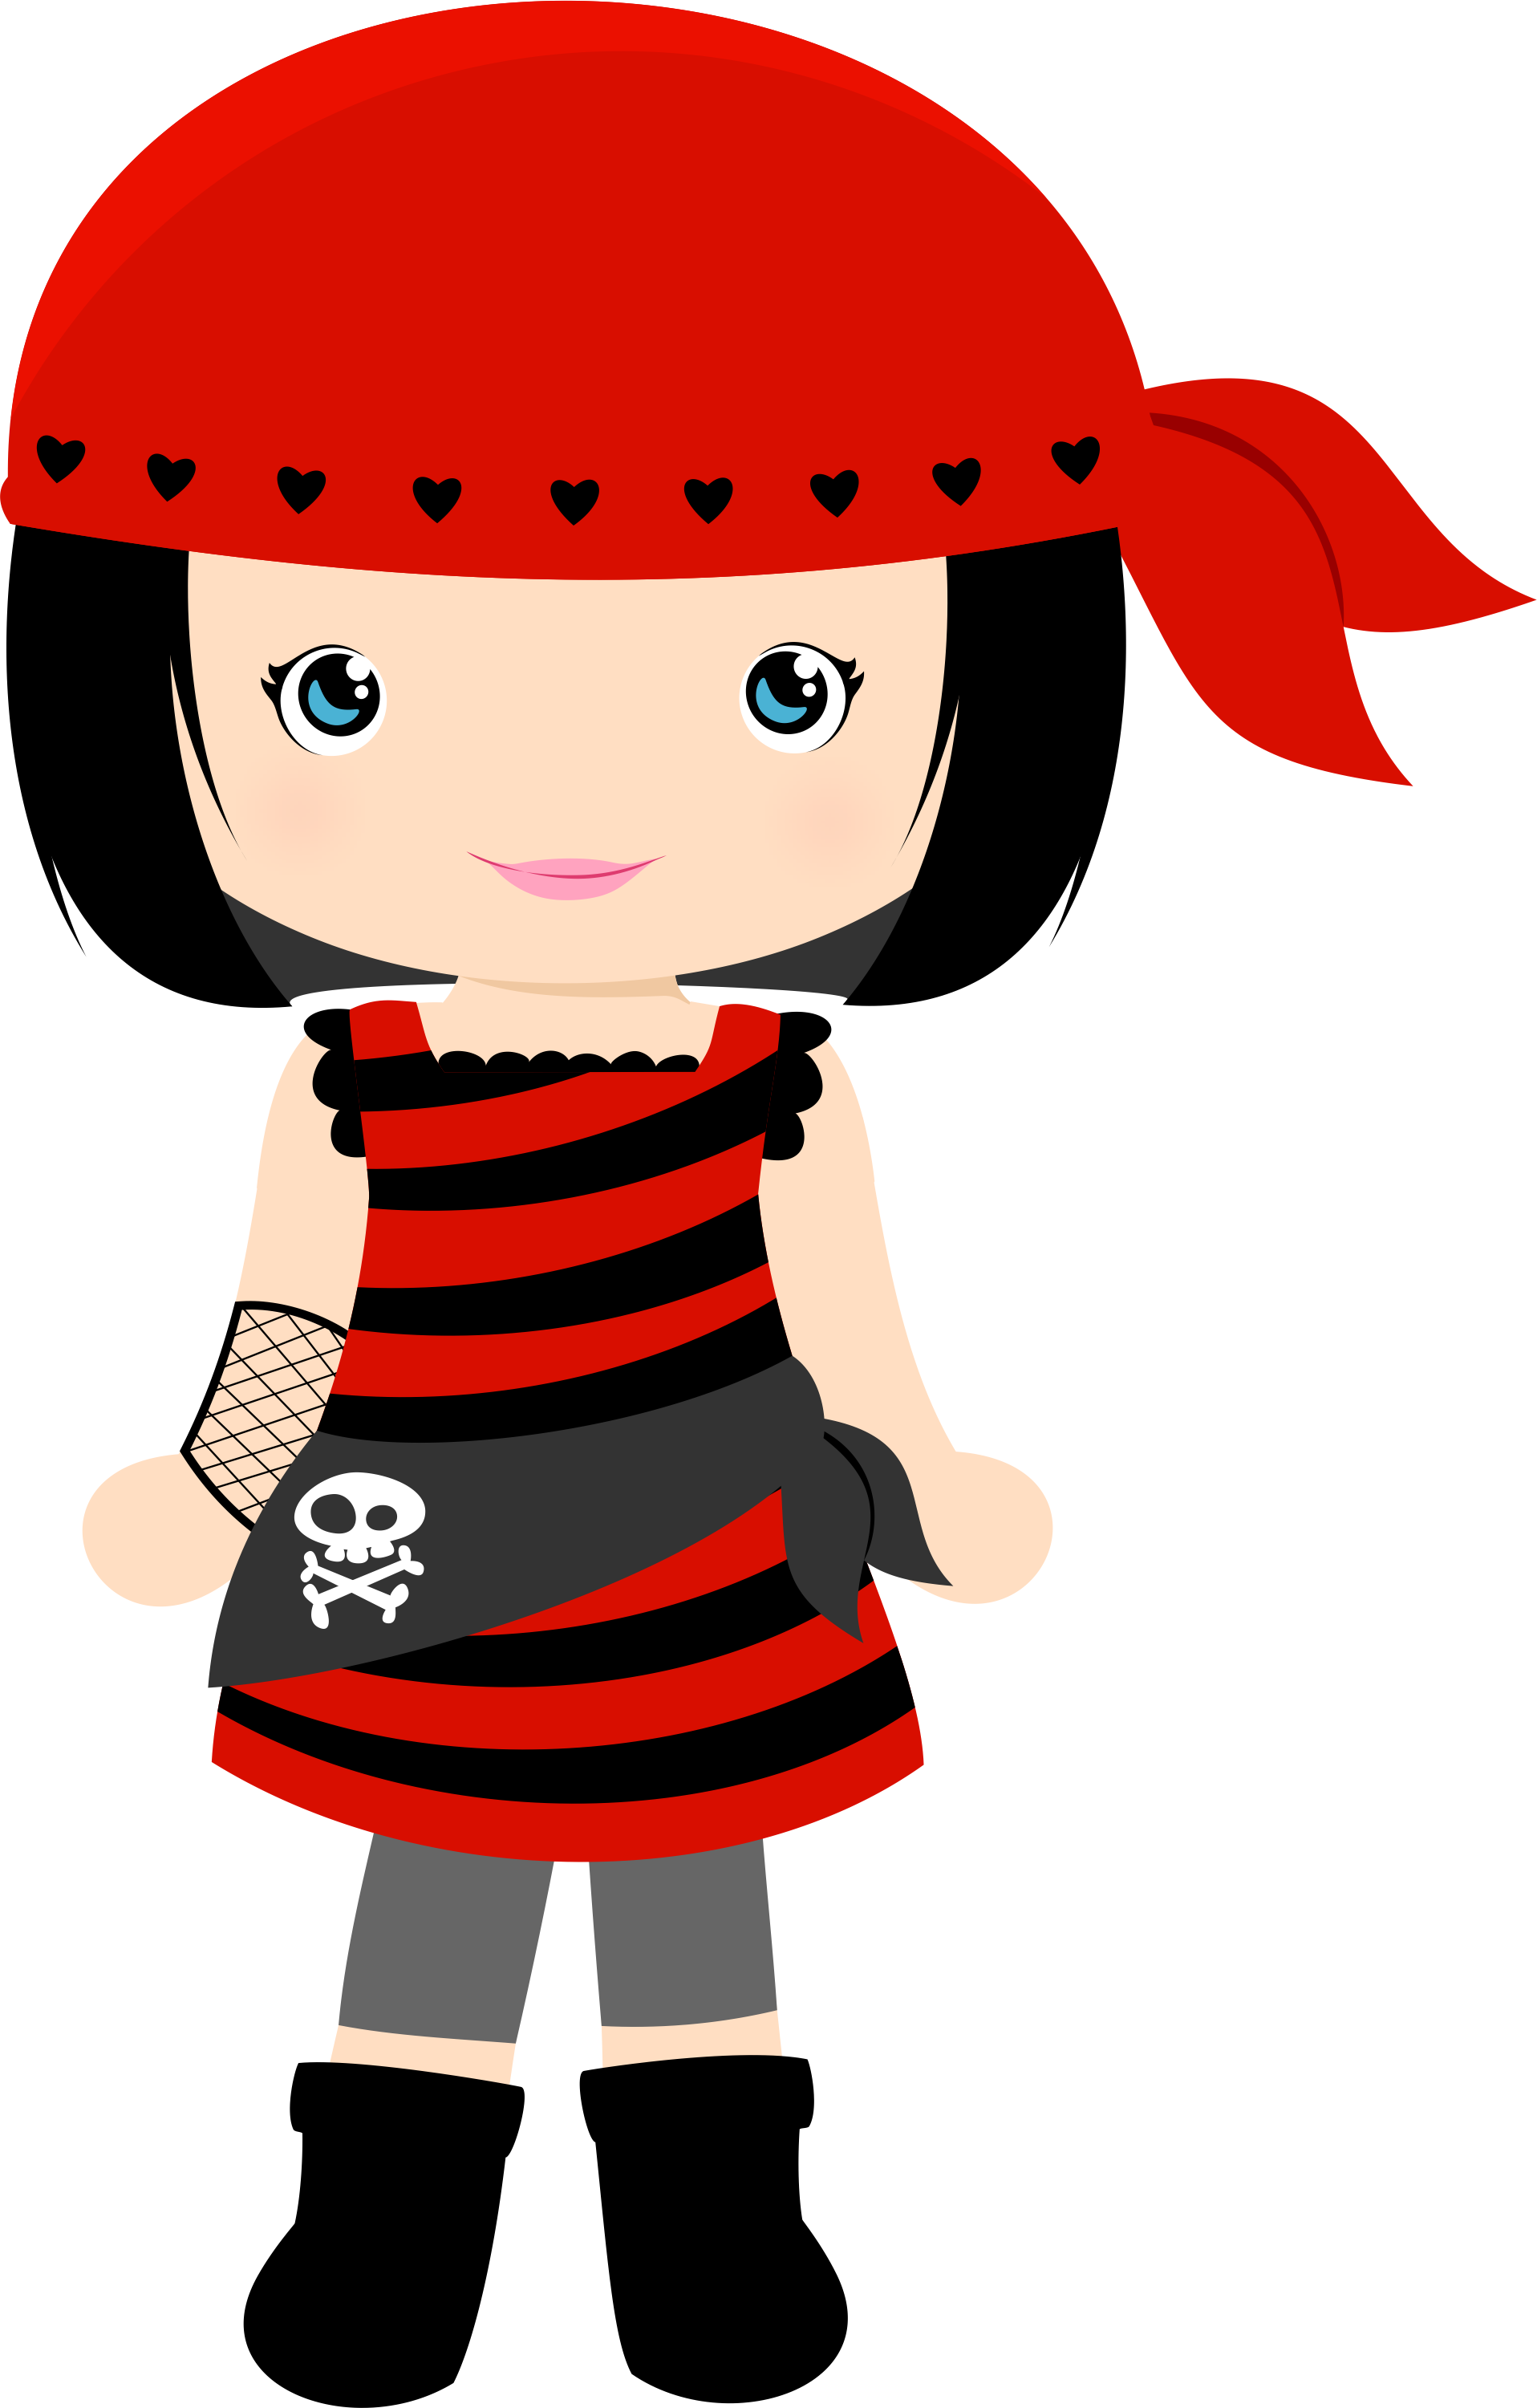 Pirate birthday pirate theme art for kids images pirates girl pirates